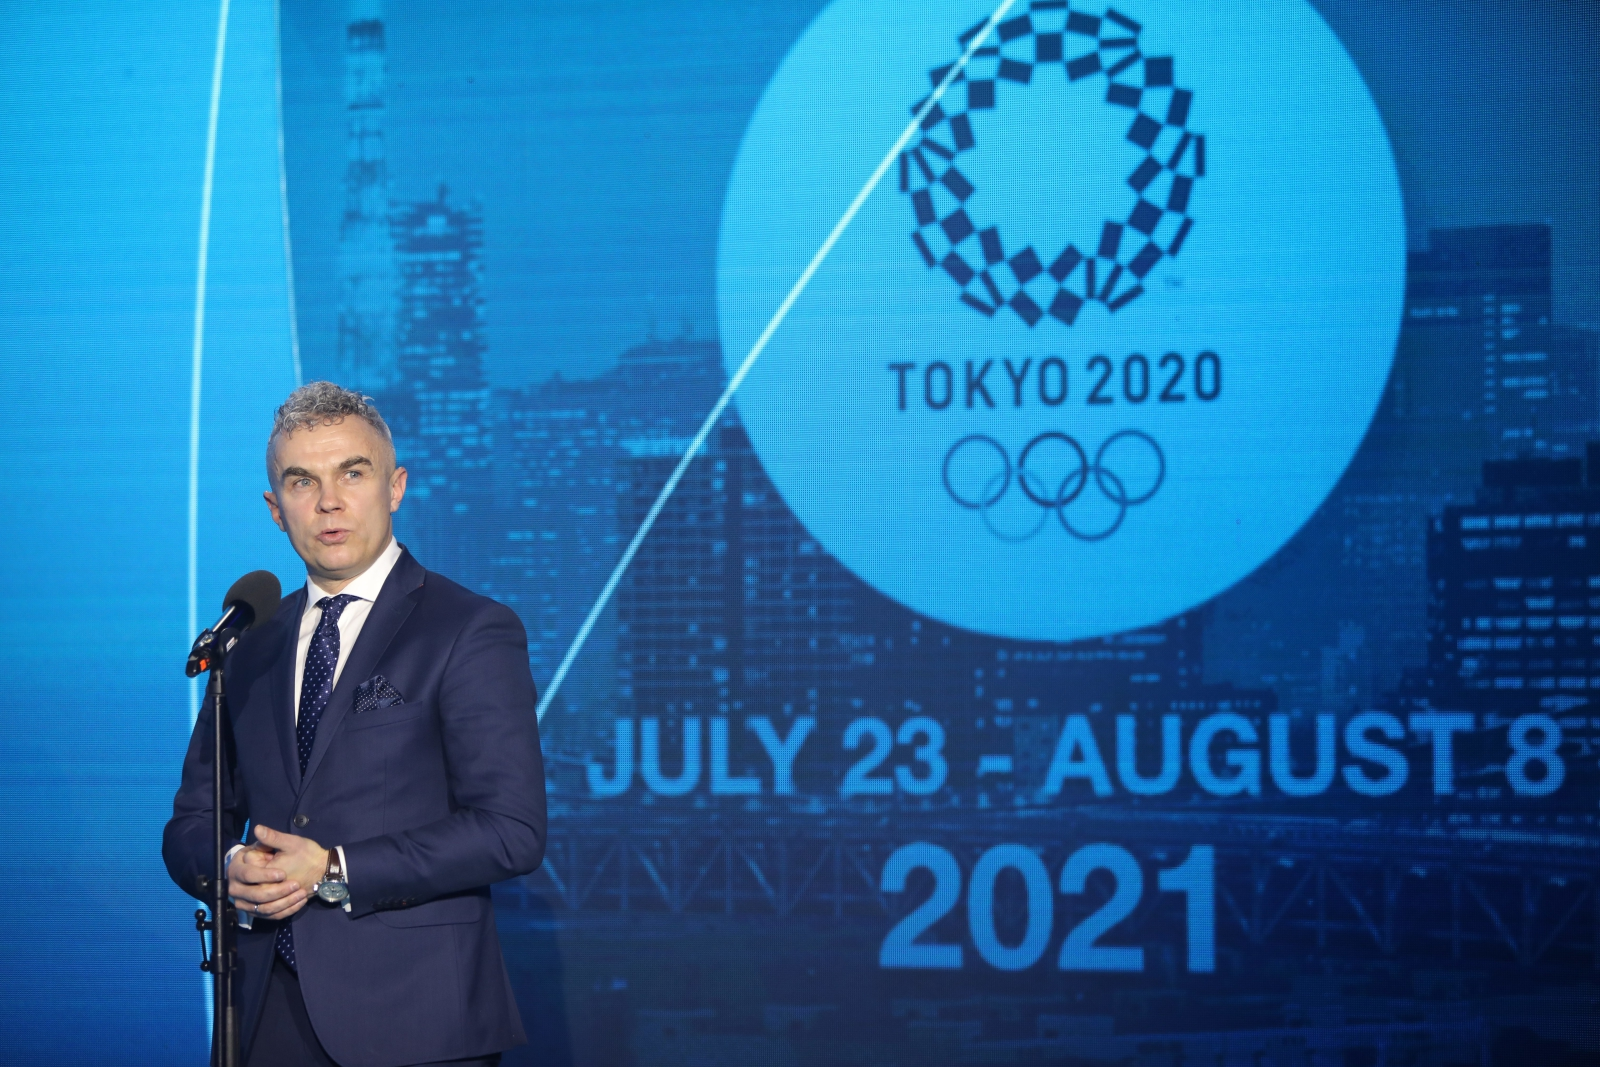 Head of the Polish Olympic Mission Tokyo 2020